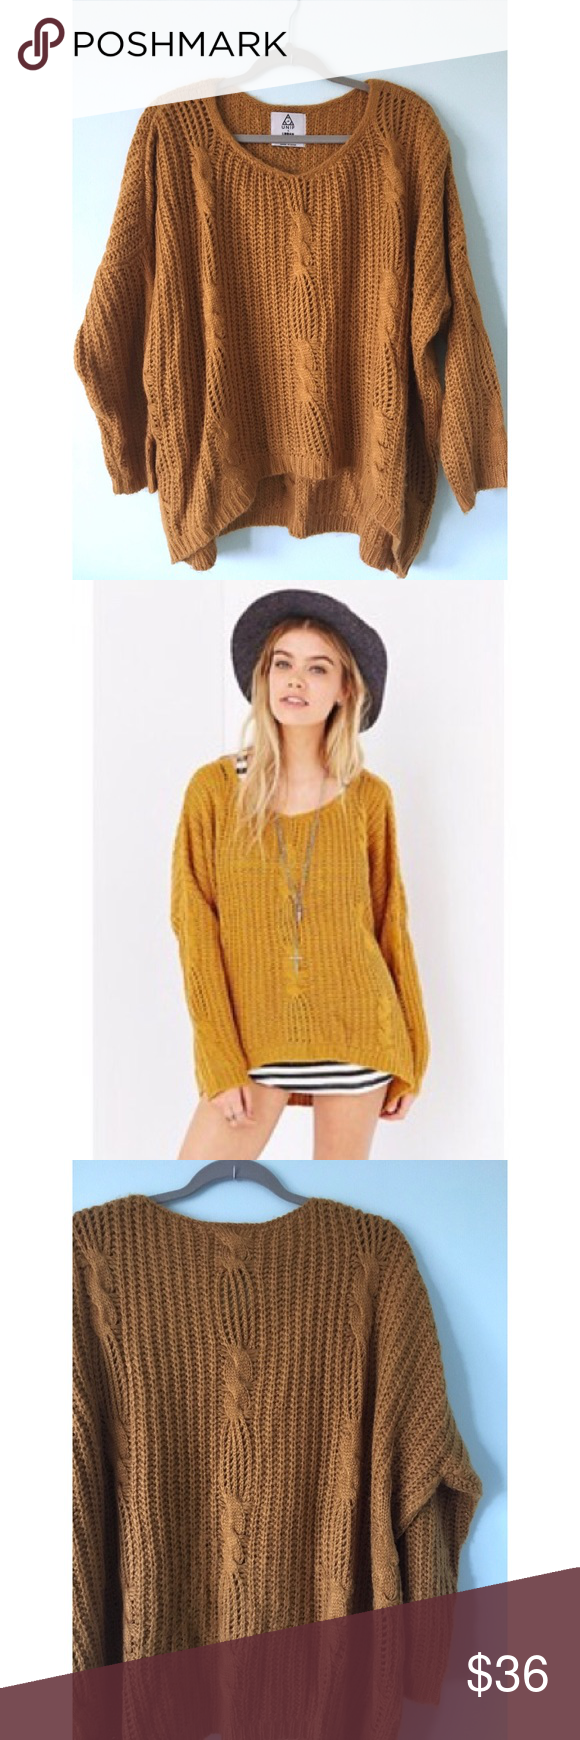 Mustard Yellow Cable Knit Sweater | Mustard yellow, Baggy sweaters ...